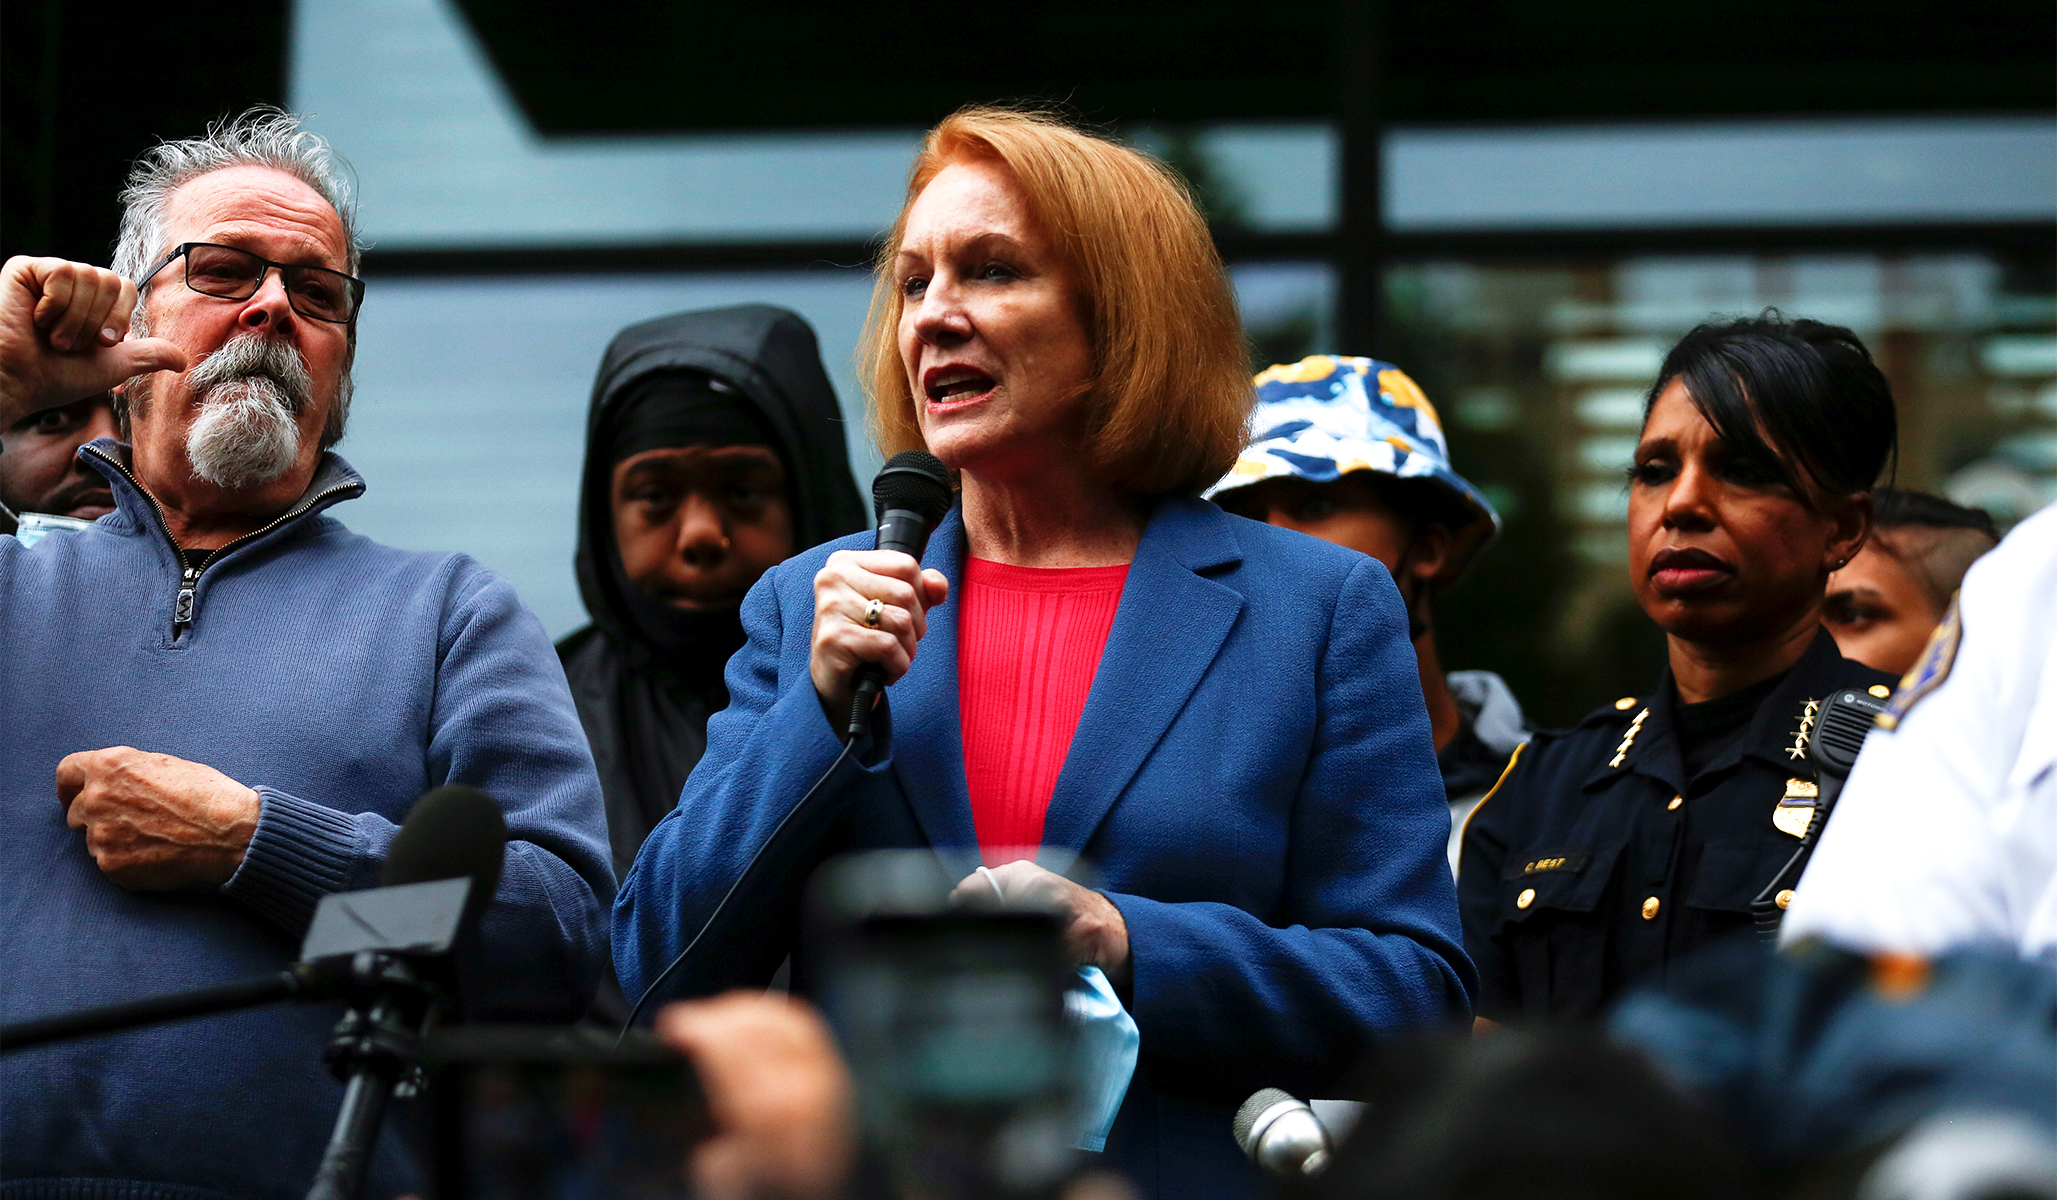 Seattle Mayor Says City Will Move to Dismantle Protest 'Autonomous Zone' after Back-to-Back Shootings thumbnail